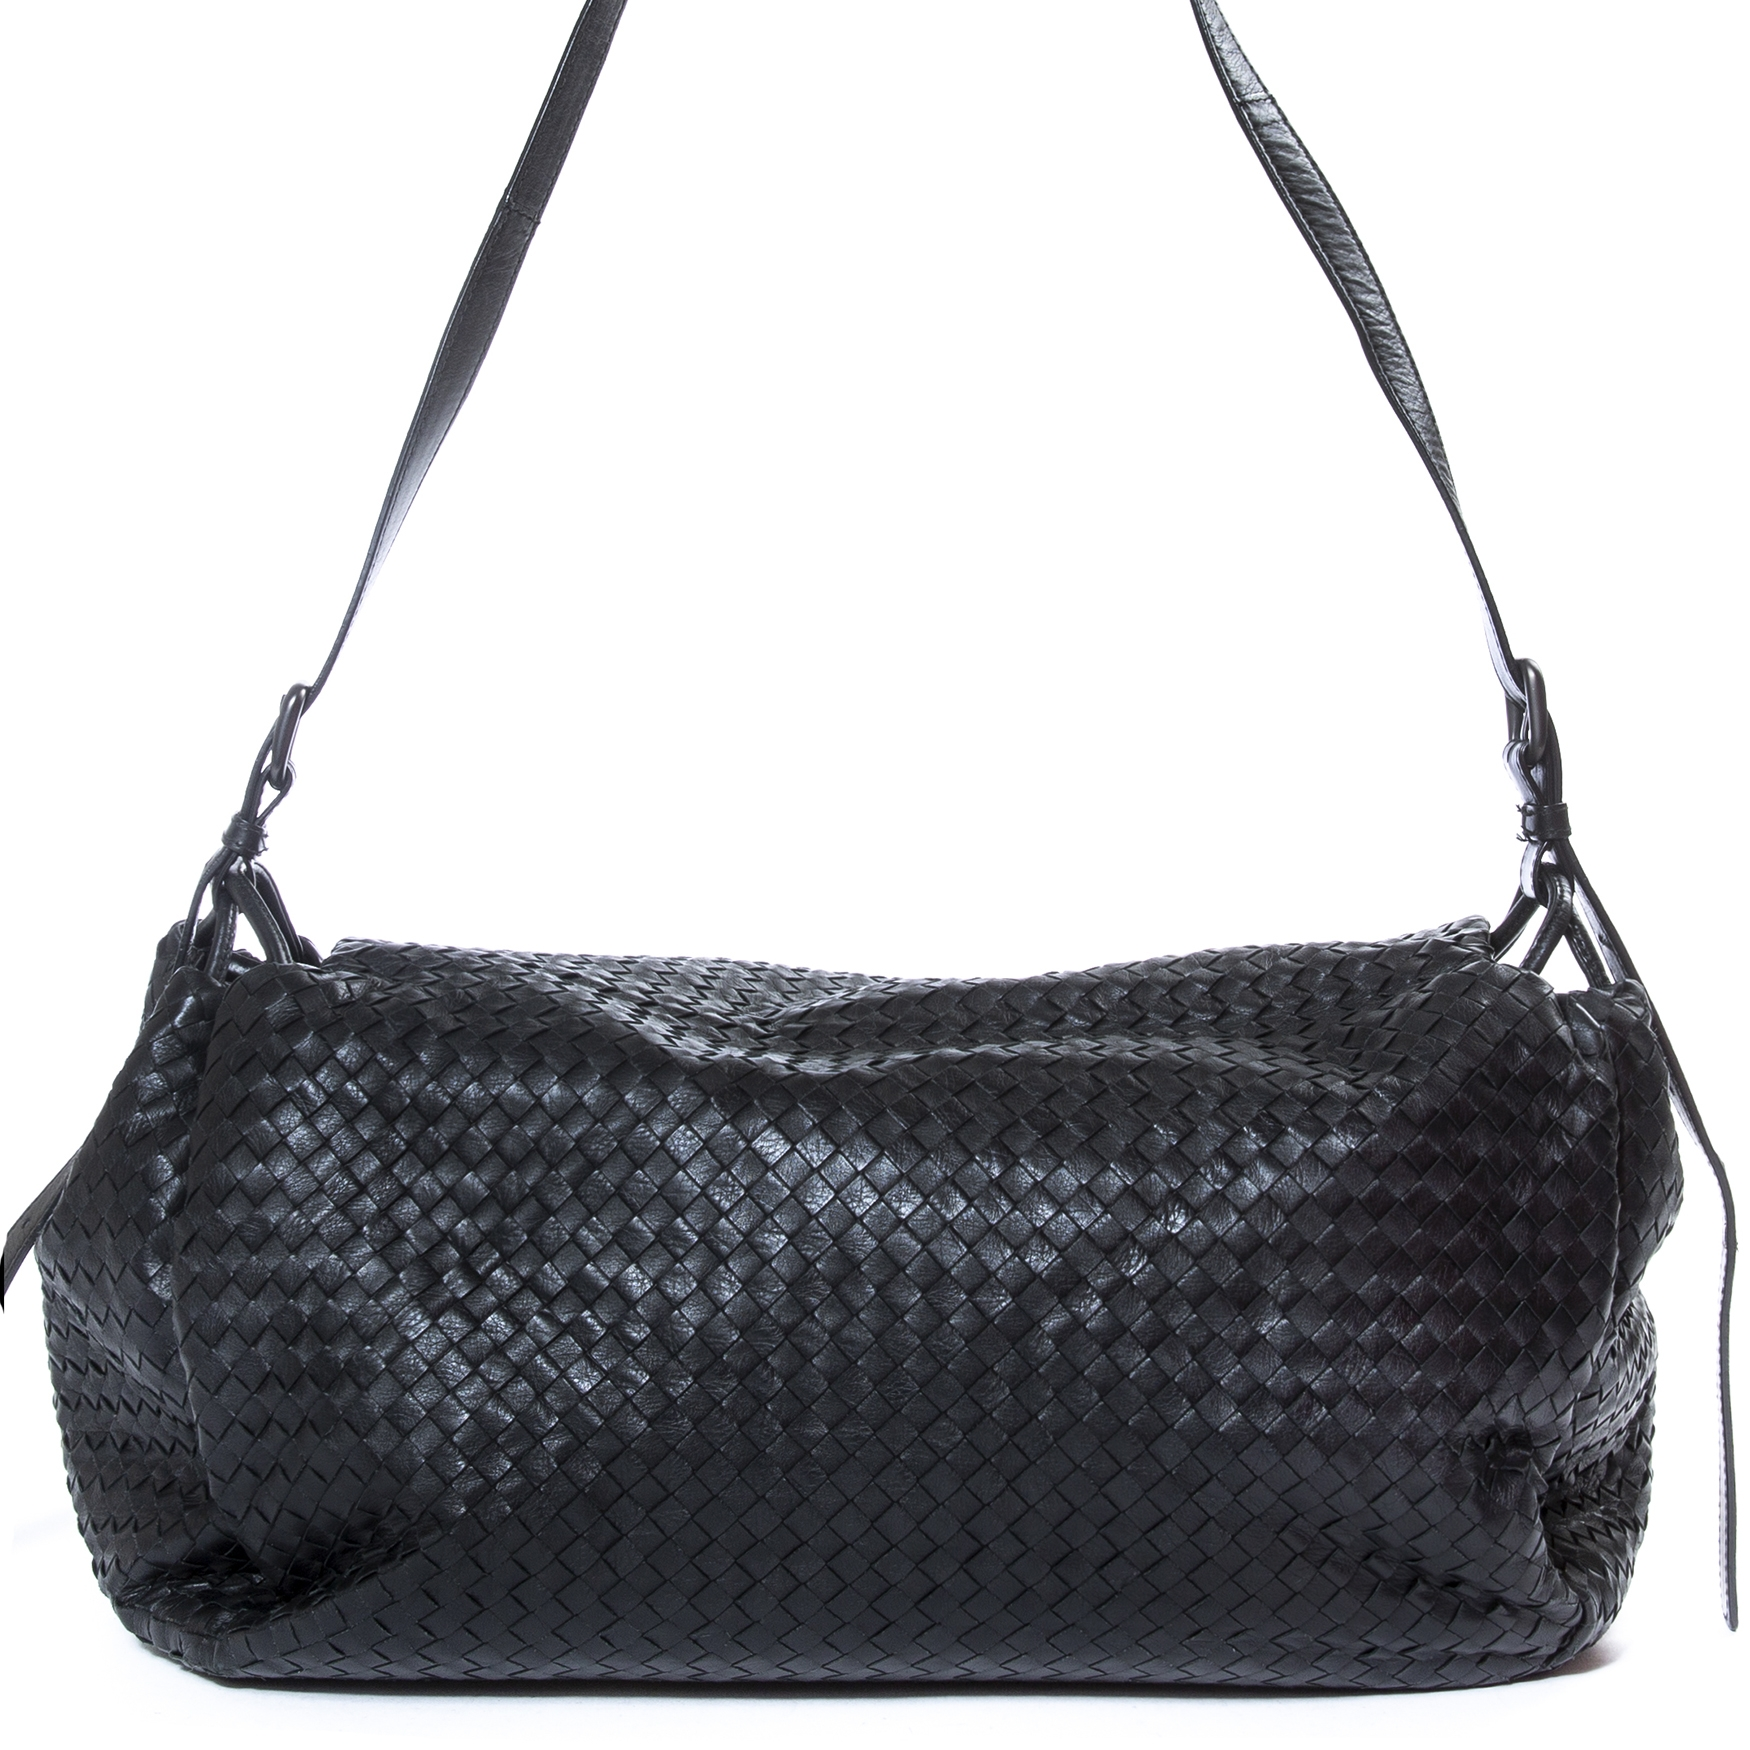 Buy and sell your authentic Bottega Veneta Black Intrecciato Nappa Leather Flap Shoulder Bag